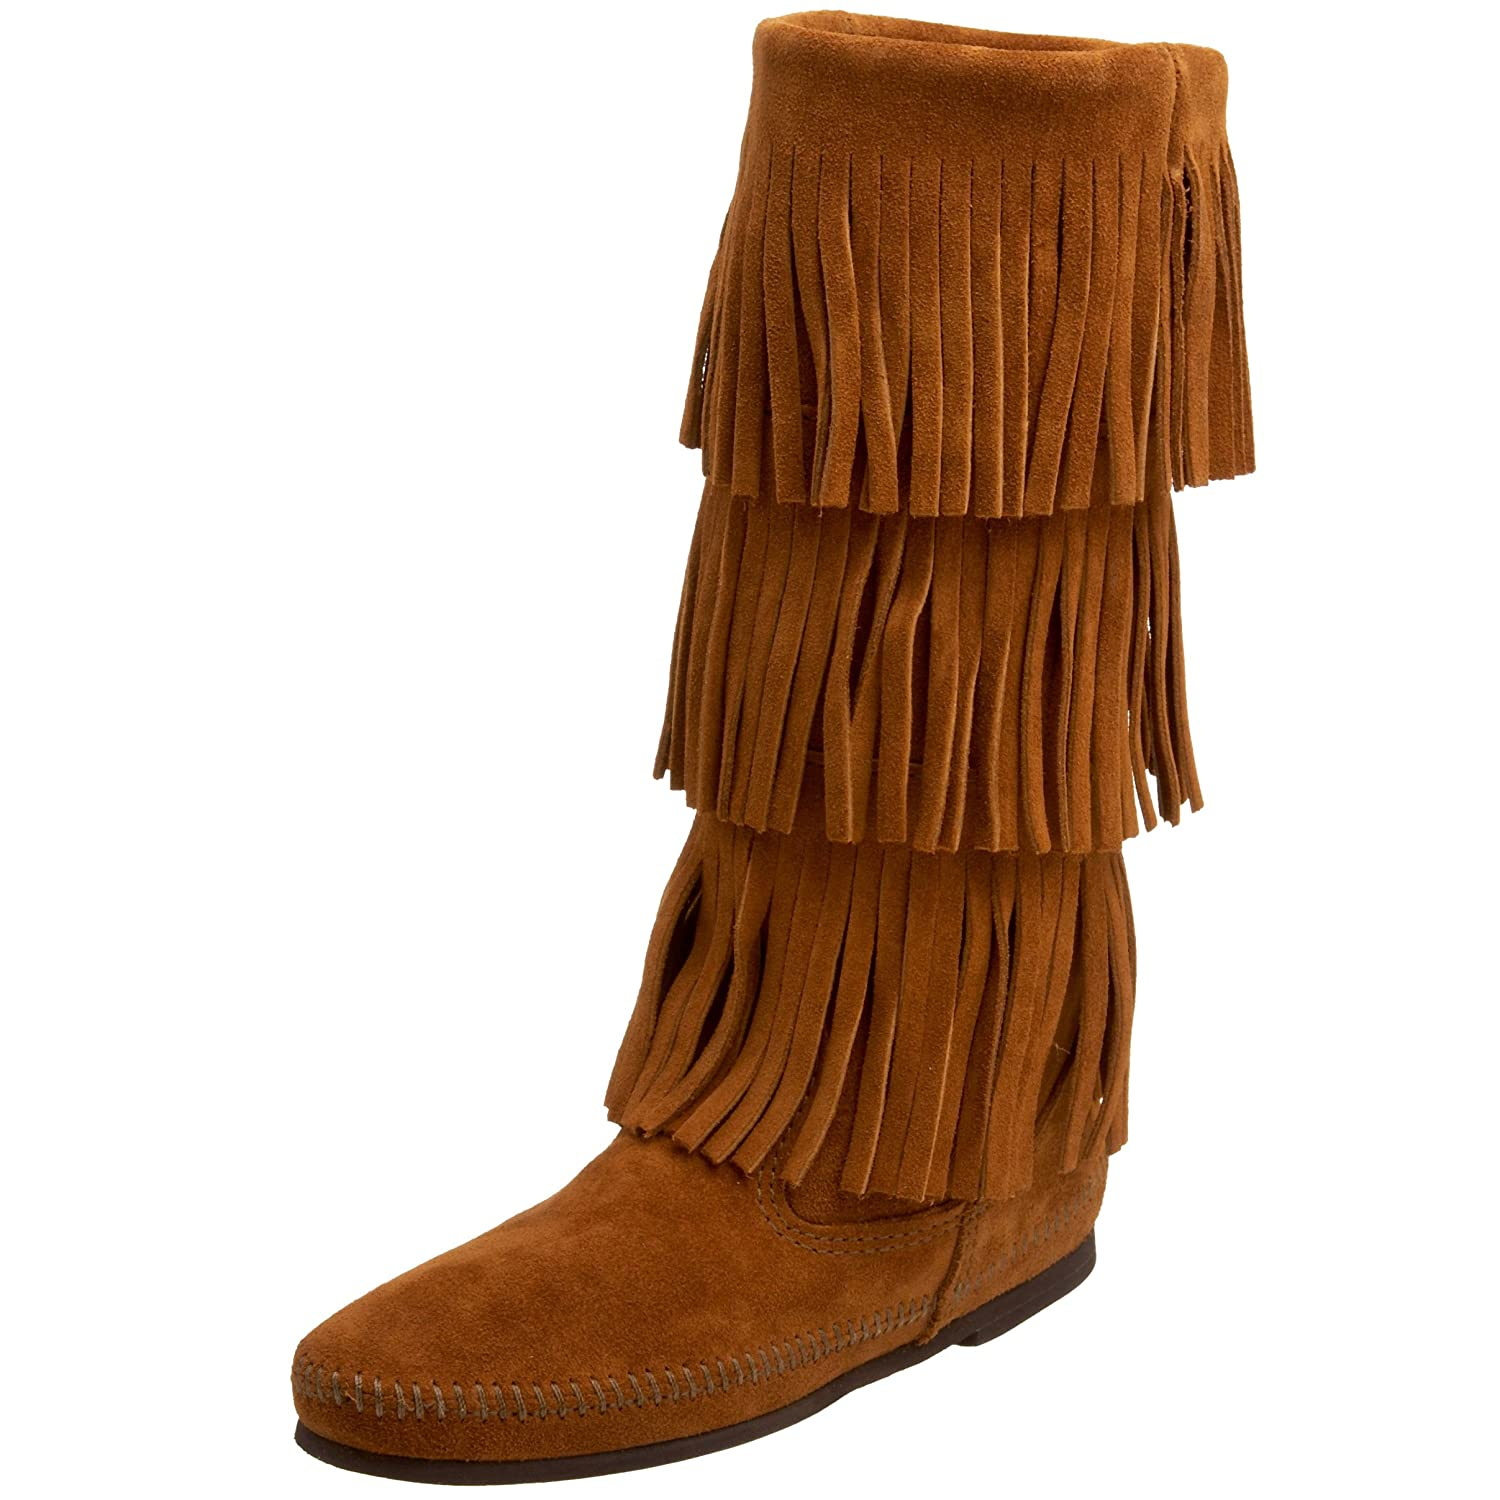 Minnetonka Women's 3-Layer Fringe Boot B002DNG7ZE 9 B(M) US|Brown Suede